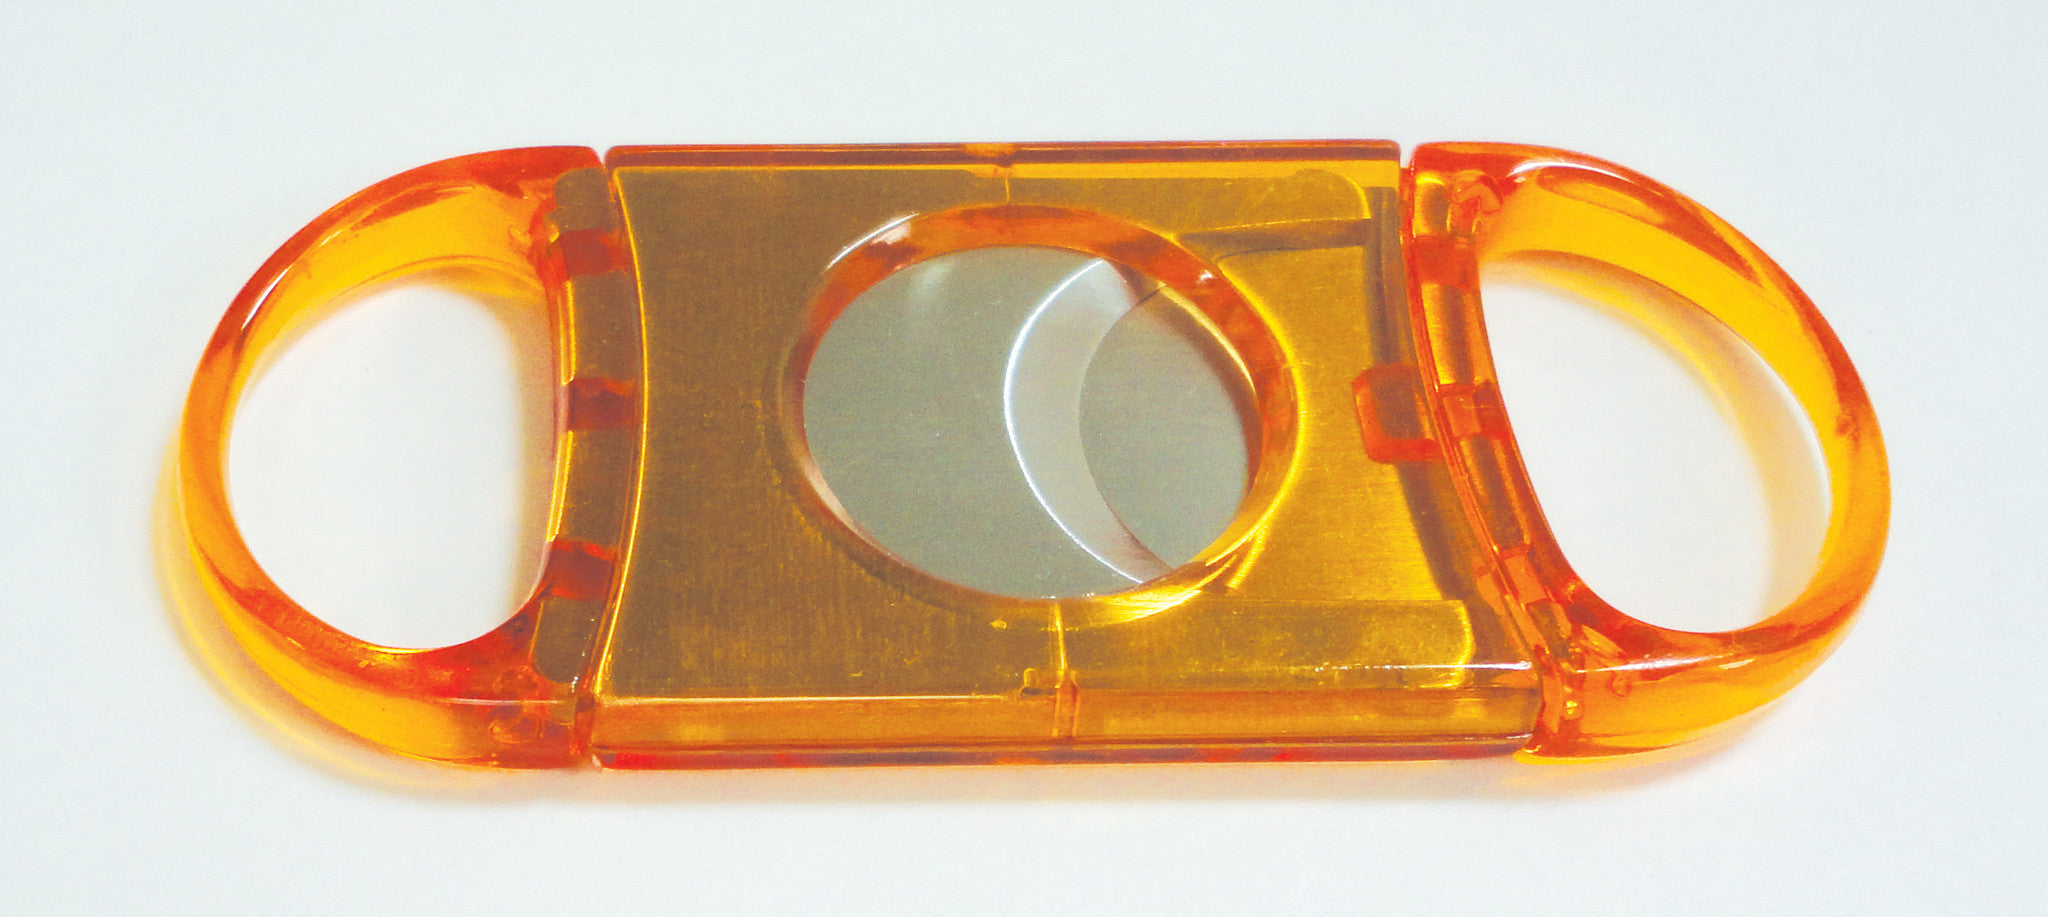 Legendex cigar cutter stainless steel double blade orange 05-05-103